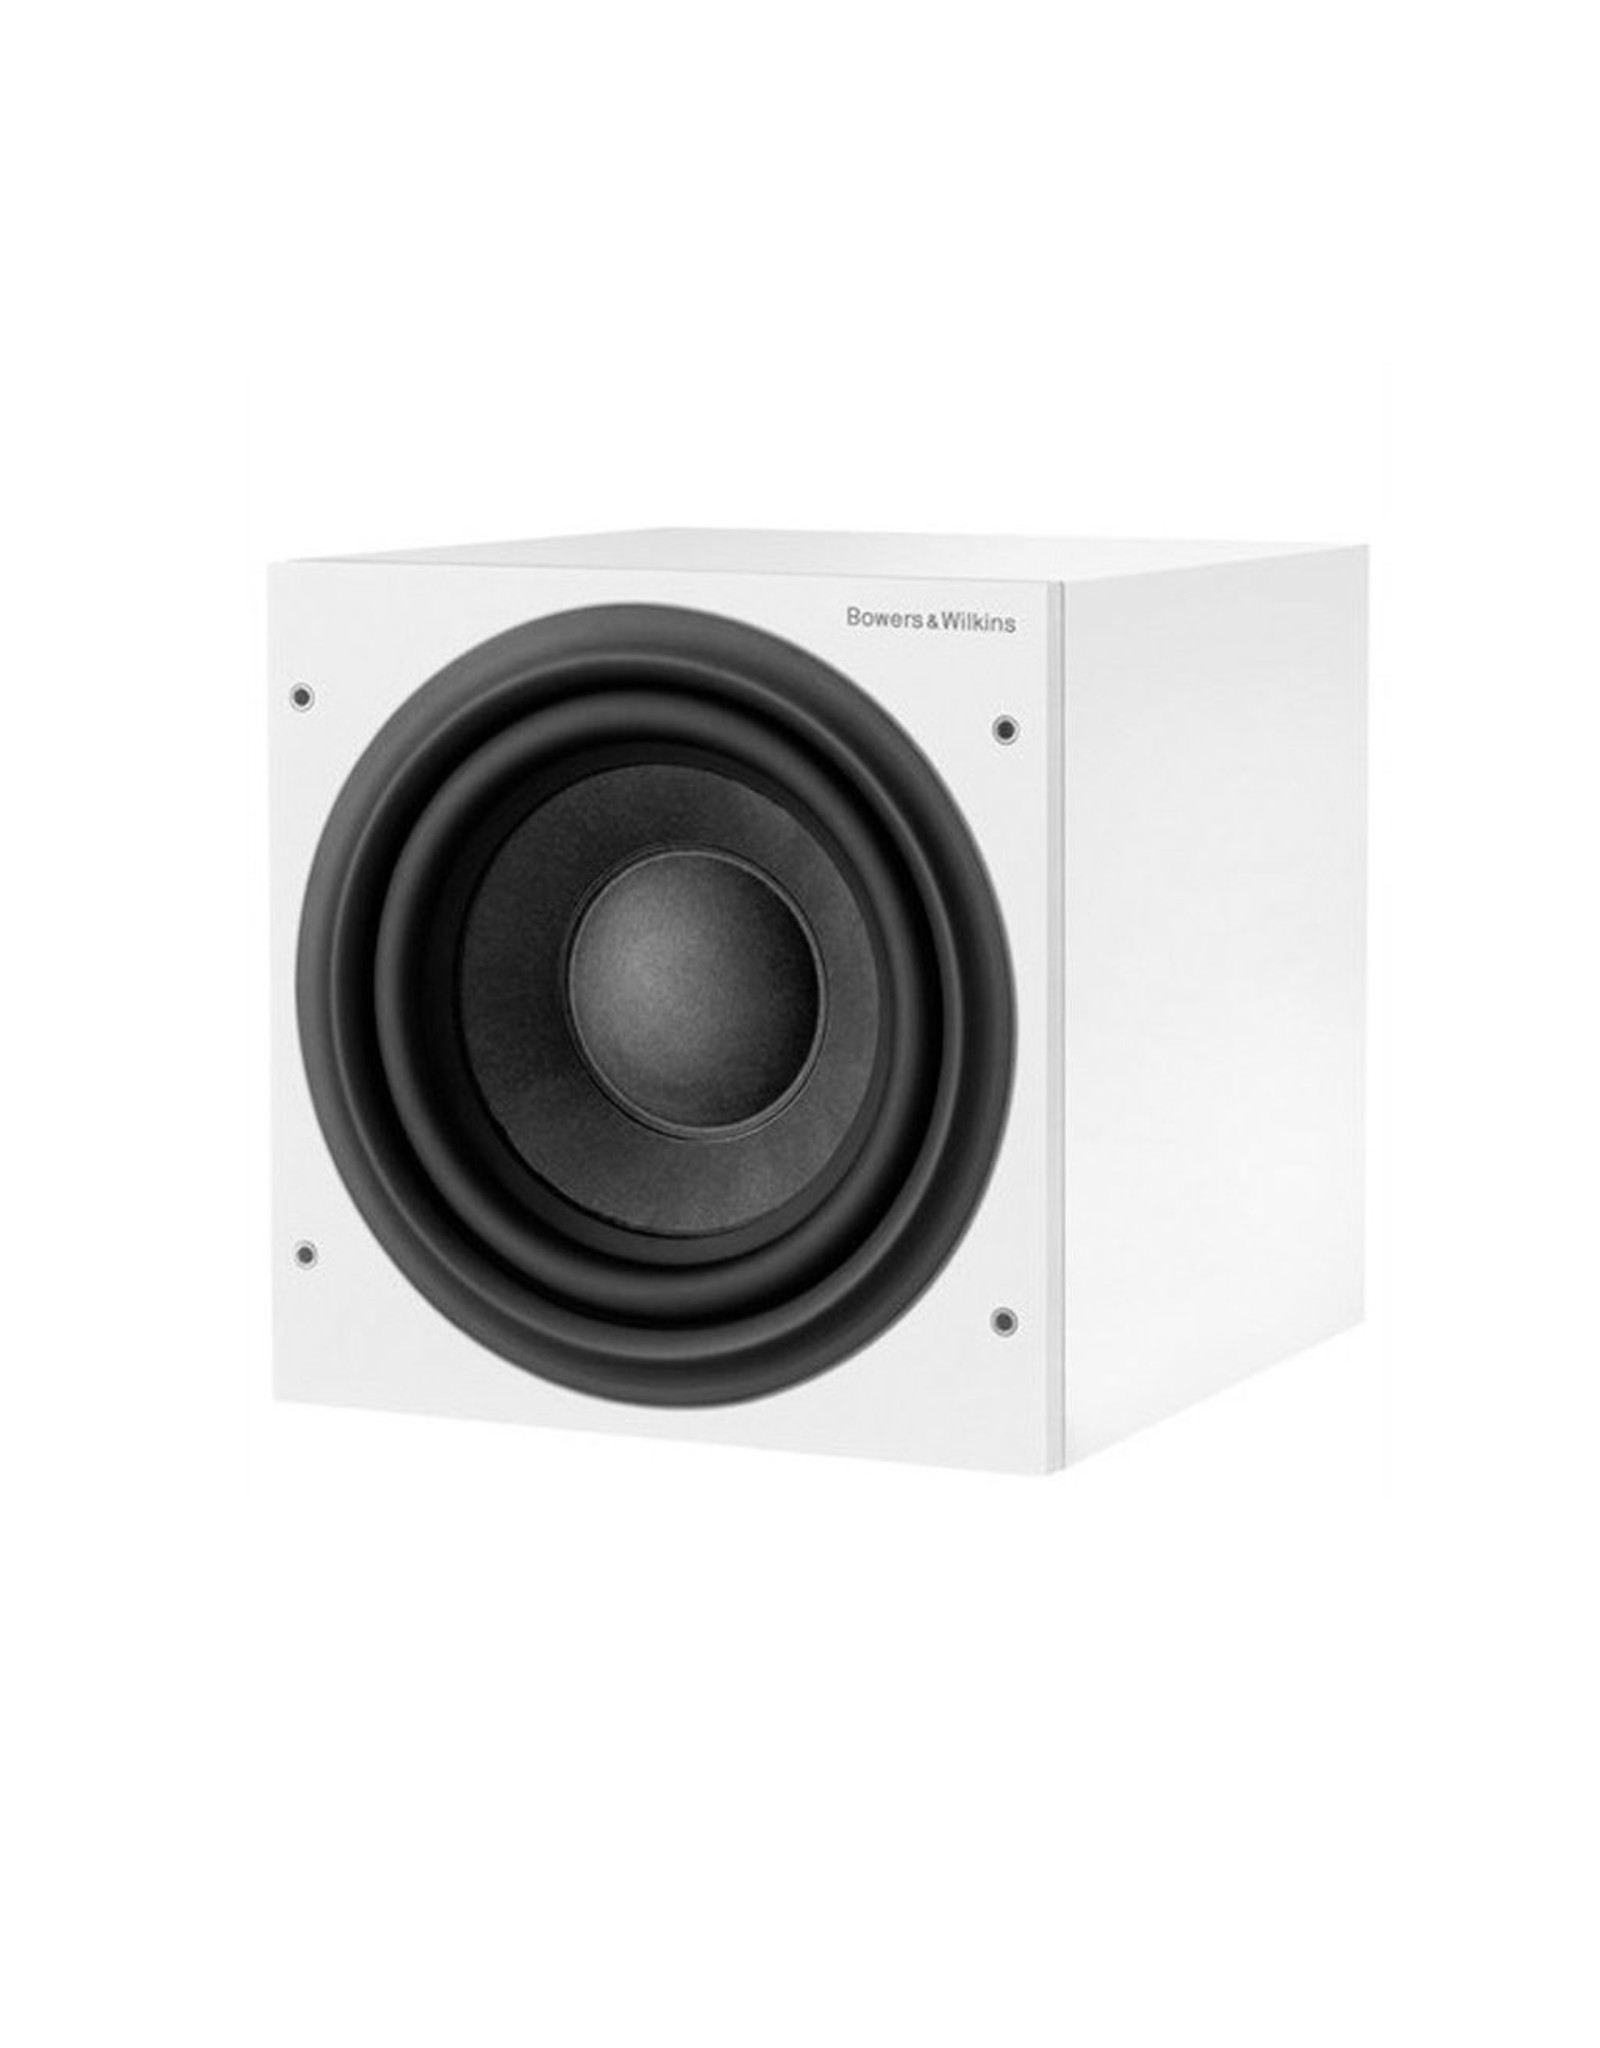 BOWERS & WILKINS ASW608 Sub